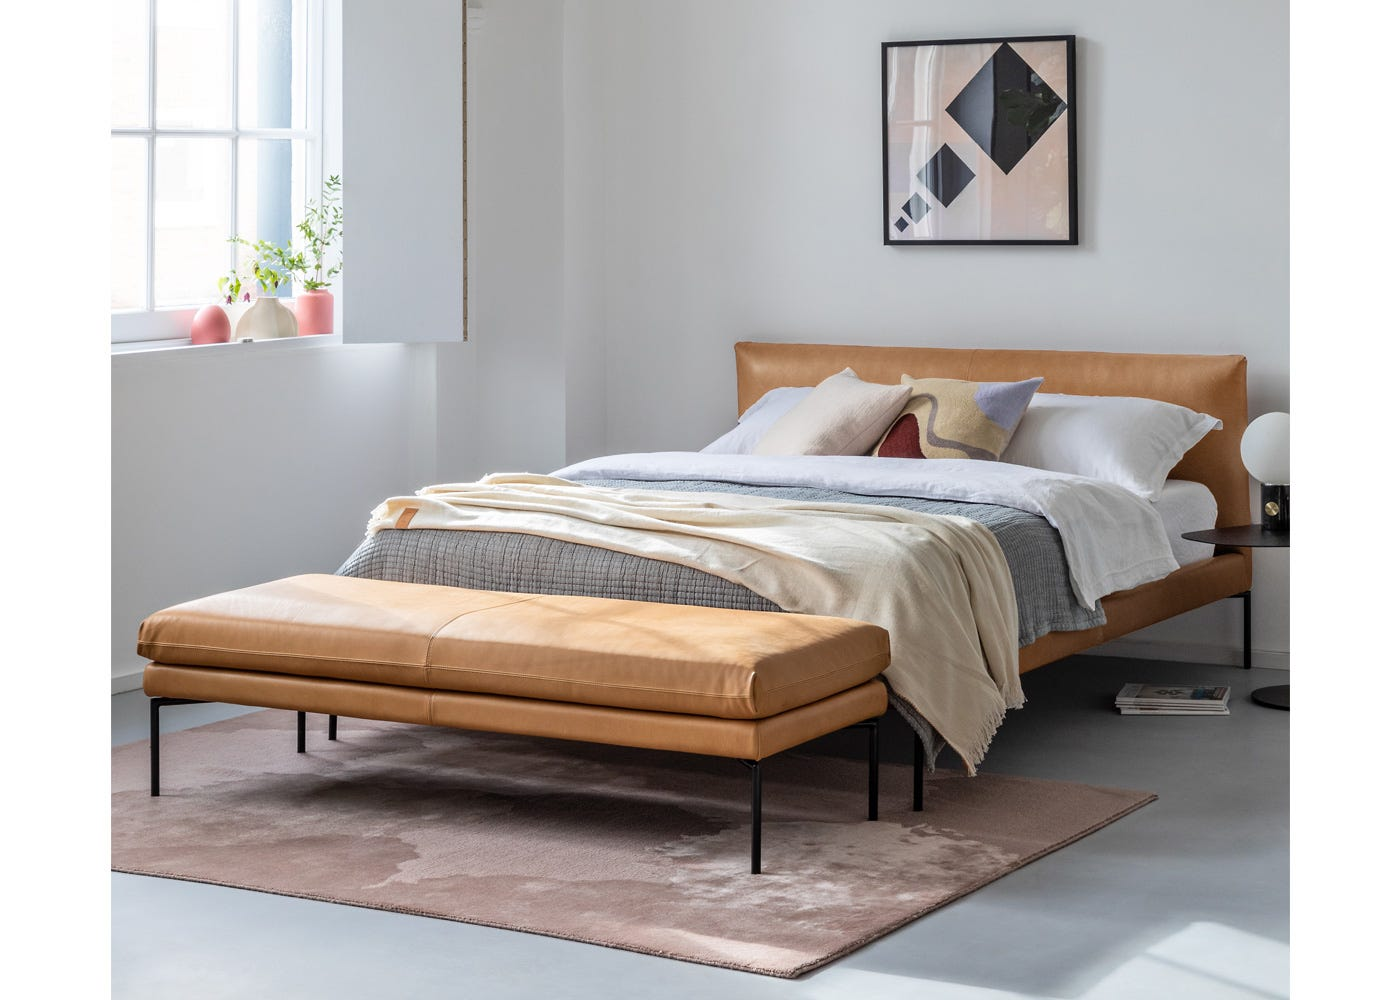 Matera Bed and Bench in Daino Leather Parchment